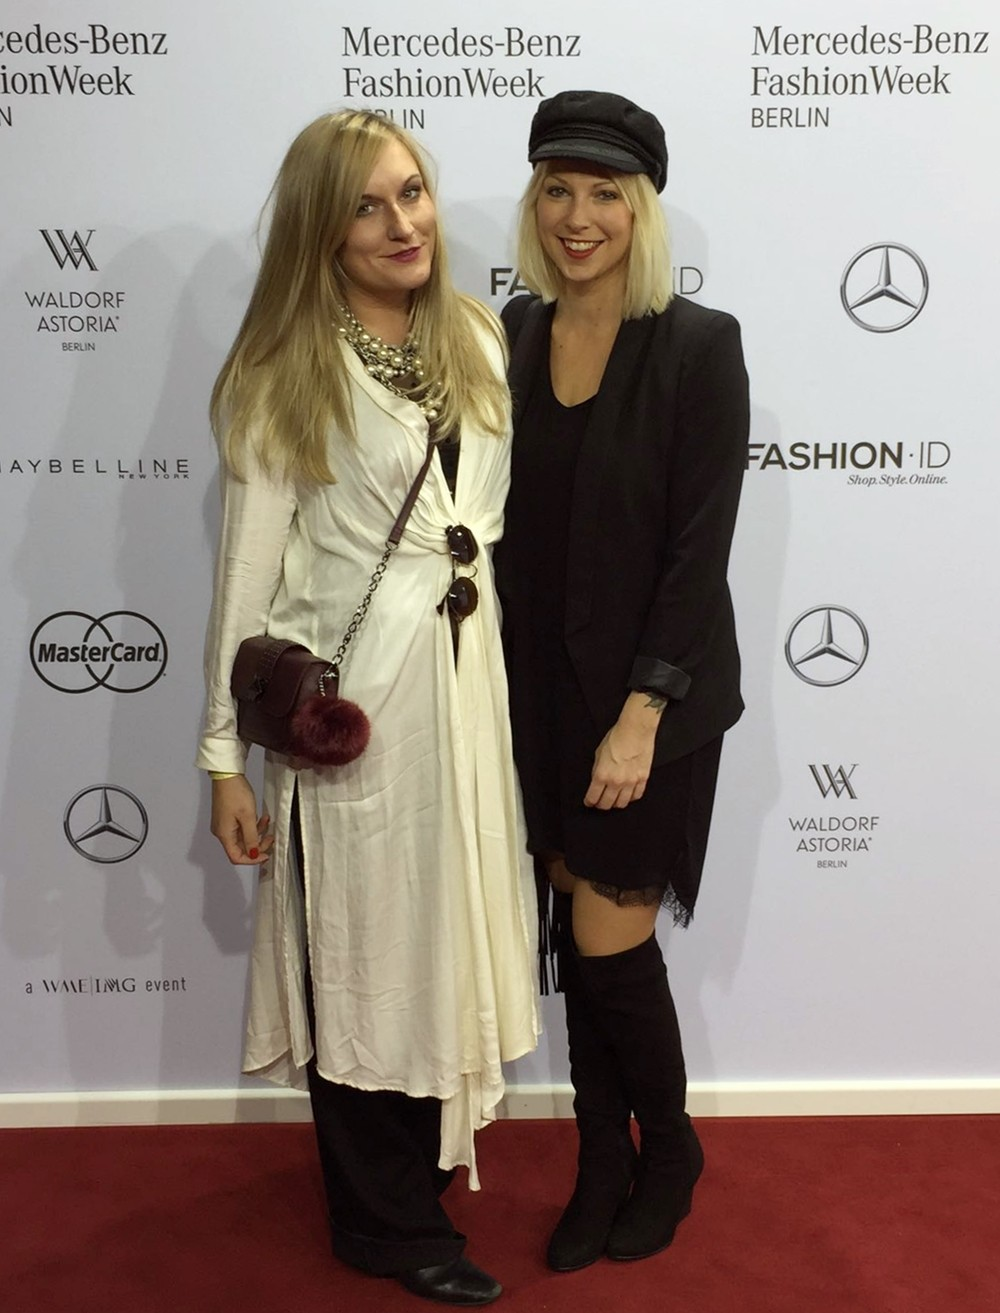 Mercedes Benz Fashion Week Berlin 2016 mit Bratwurstmadl